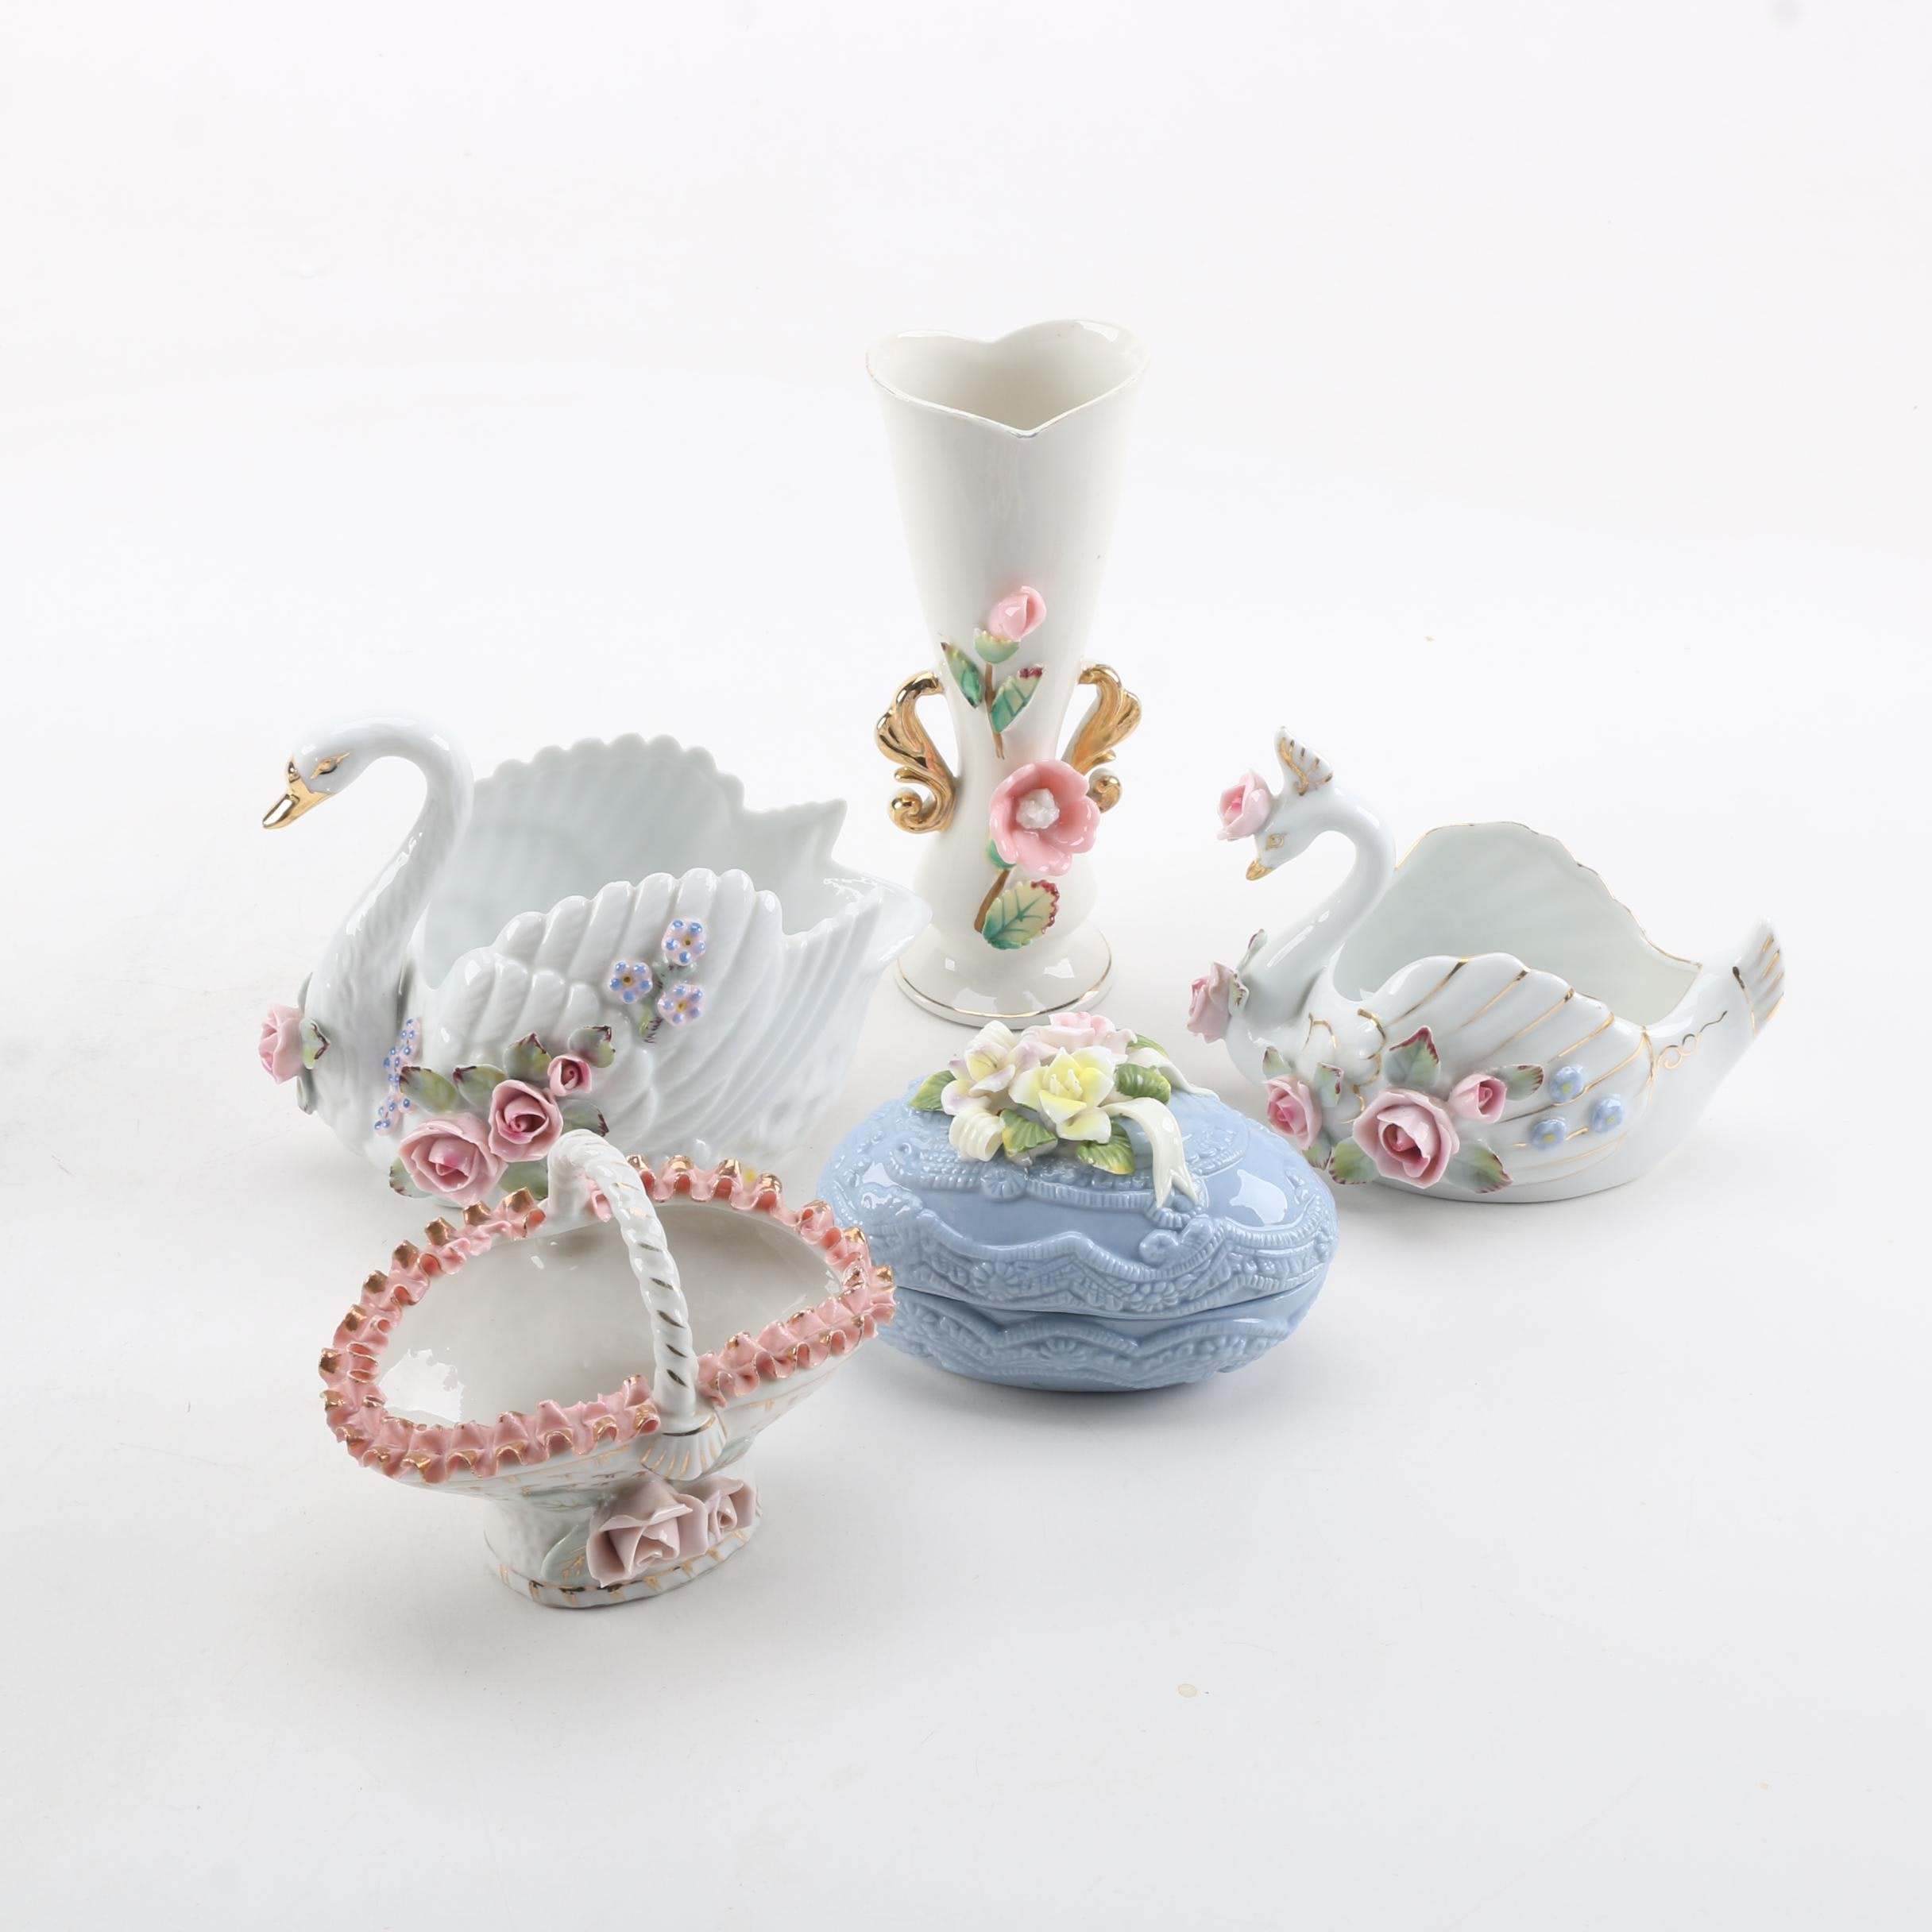 Hand Painted Porcelain Figurines Featuring Ucagco Japan